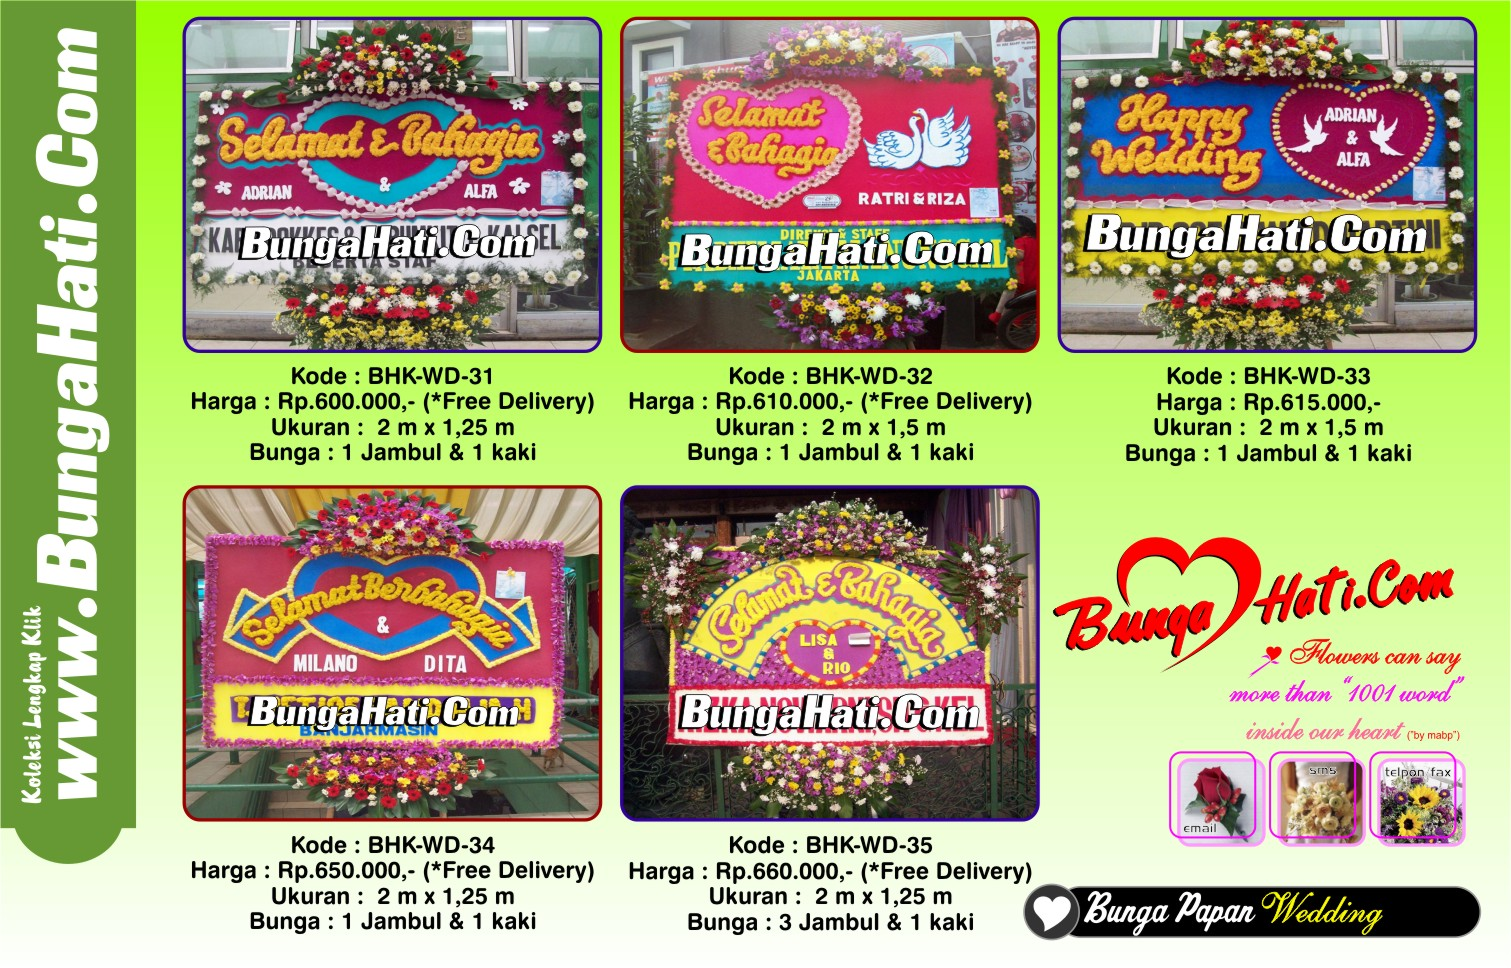 bunga papan wedding design by bungapapanonline.com dapatkan Disc 10 %